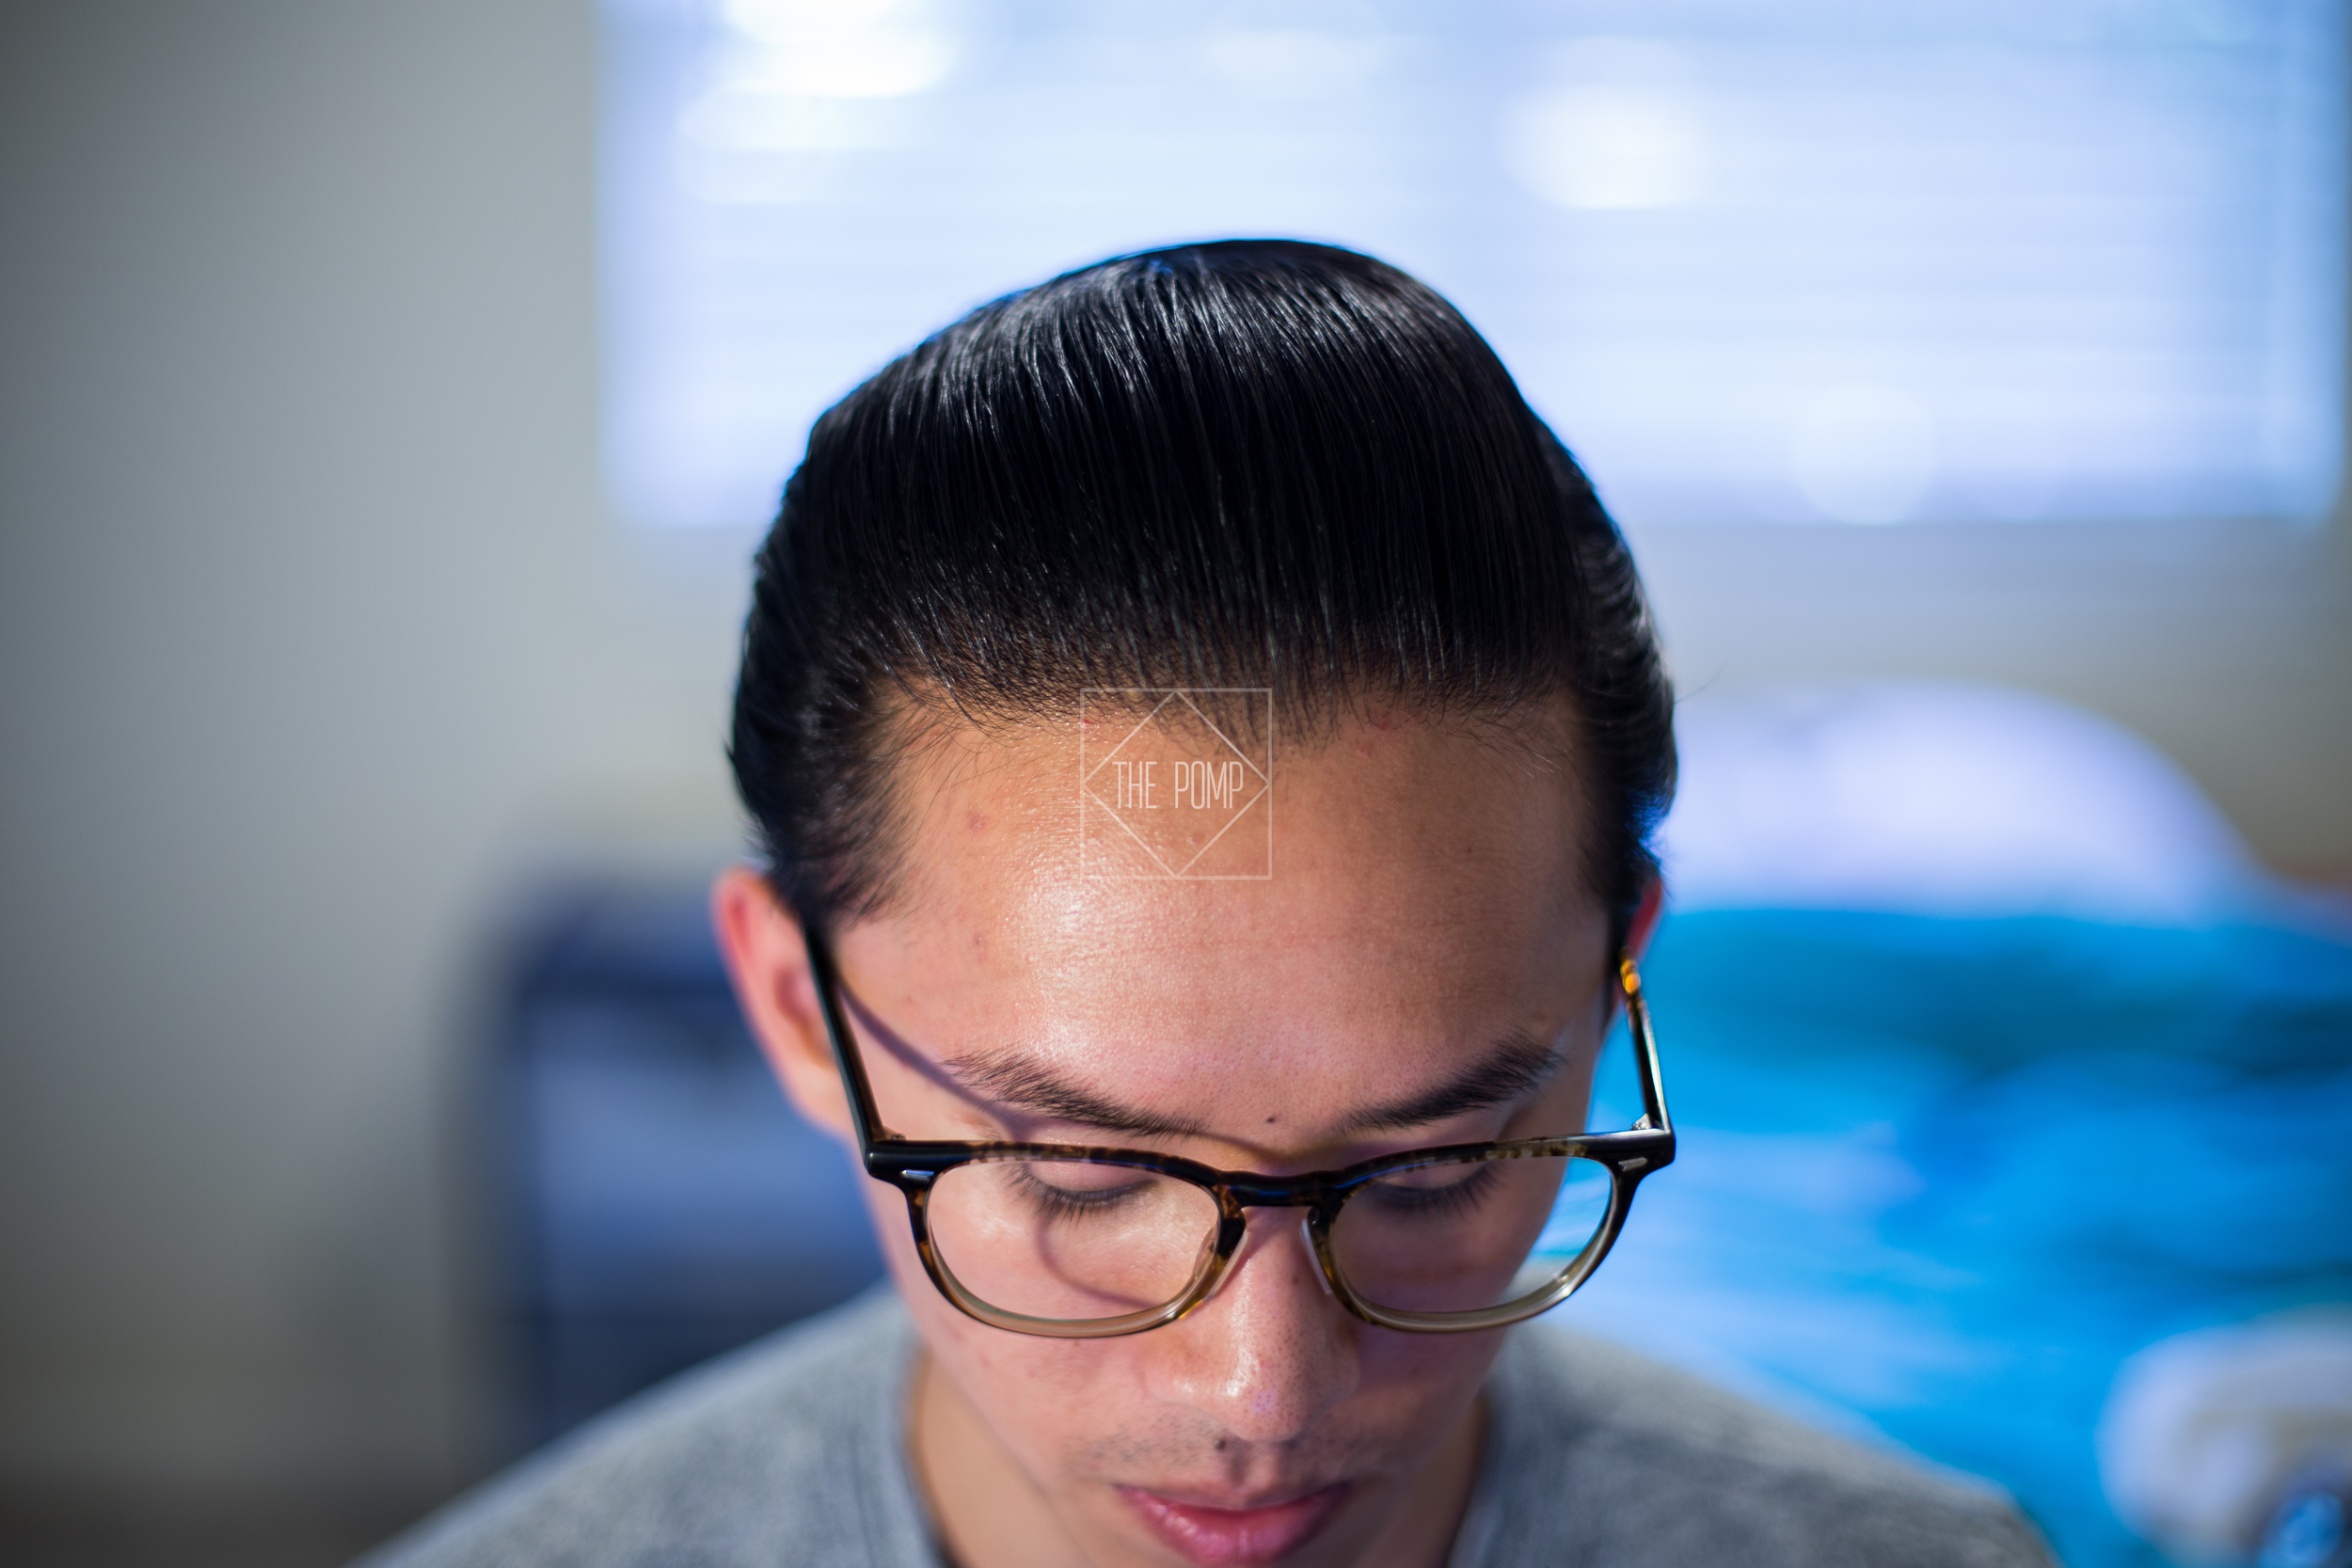 The Iron Society Firm Hold Pomade final pomp